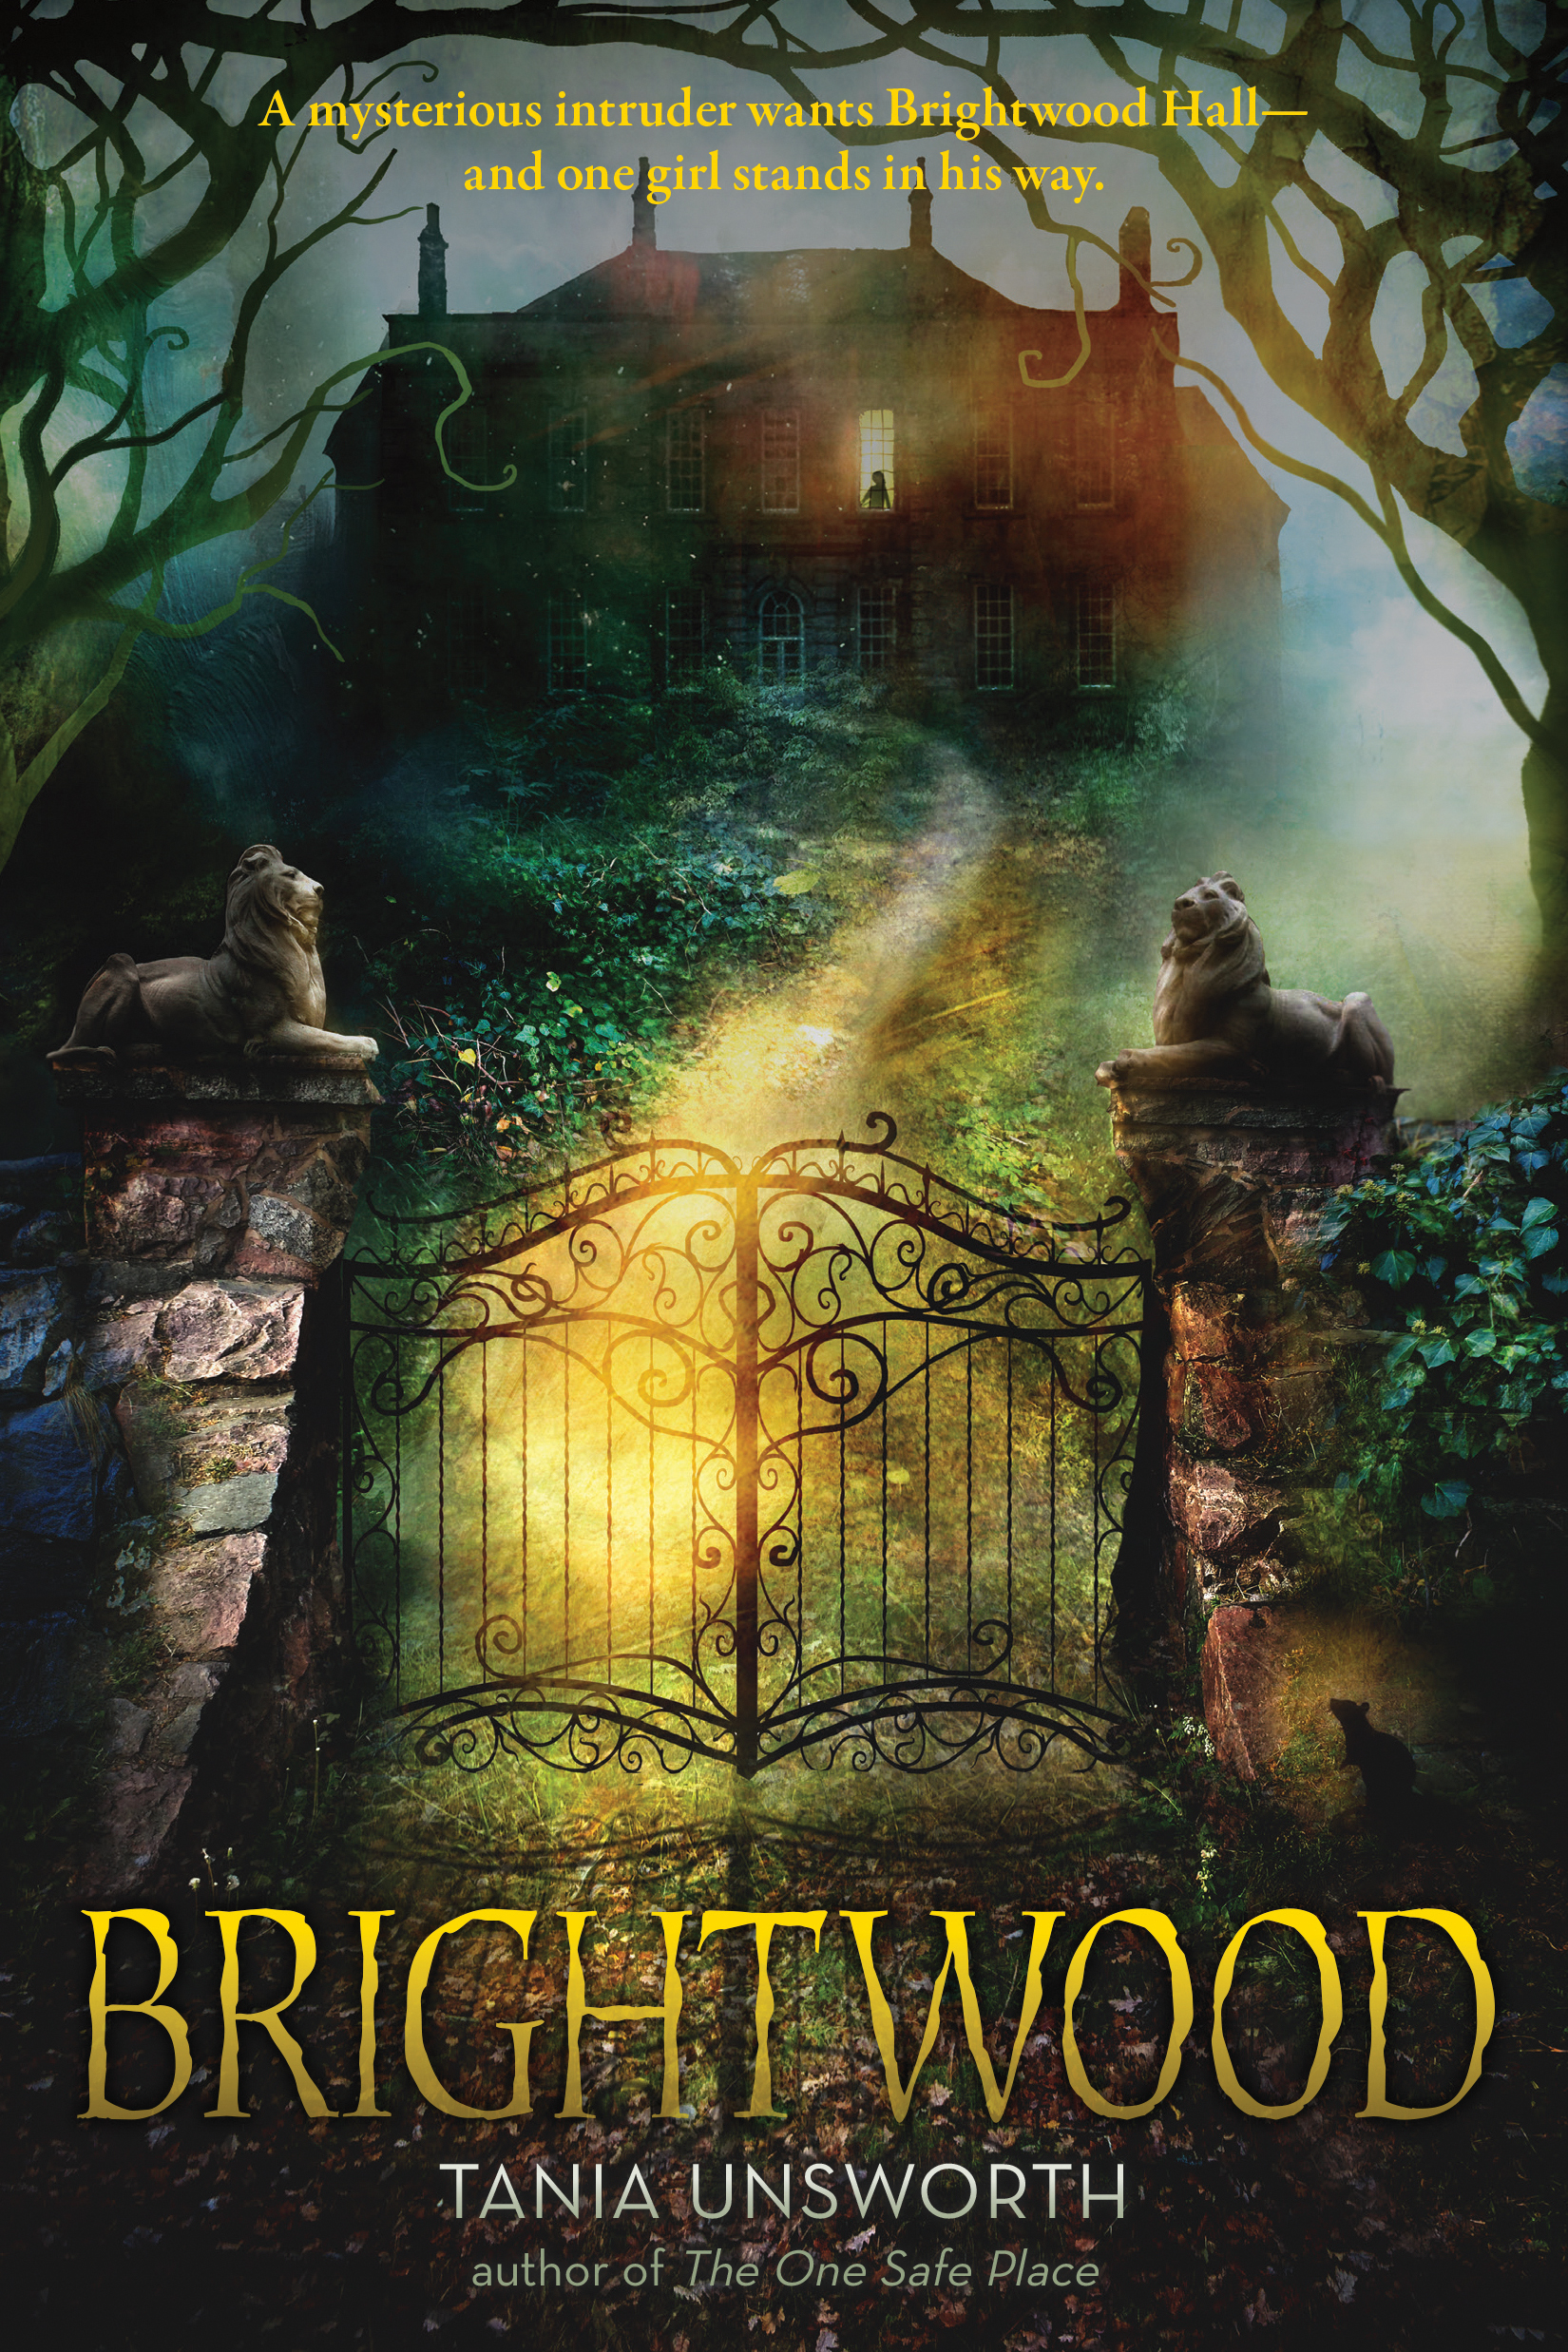 Interview with a Character ~ Brightwood by Tania Unsworth